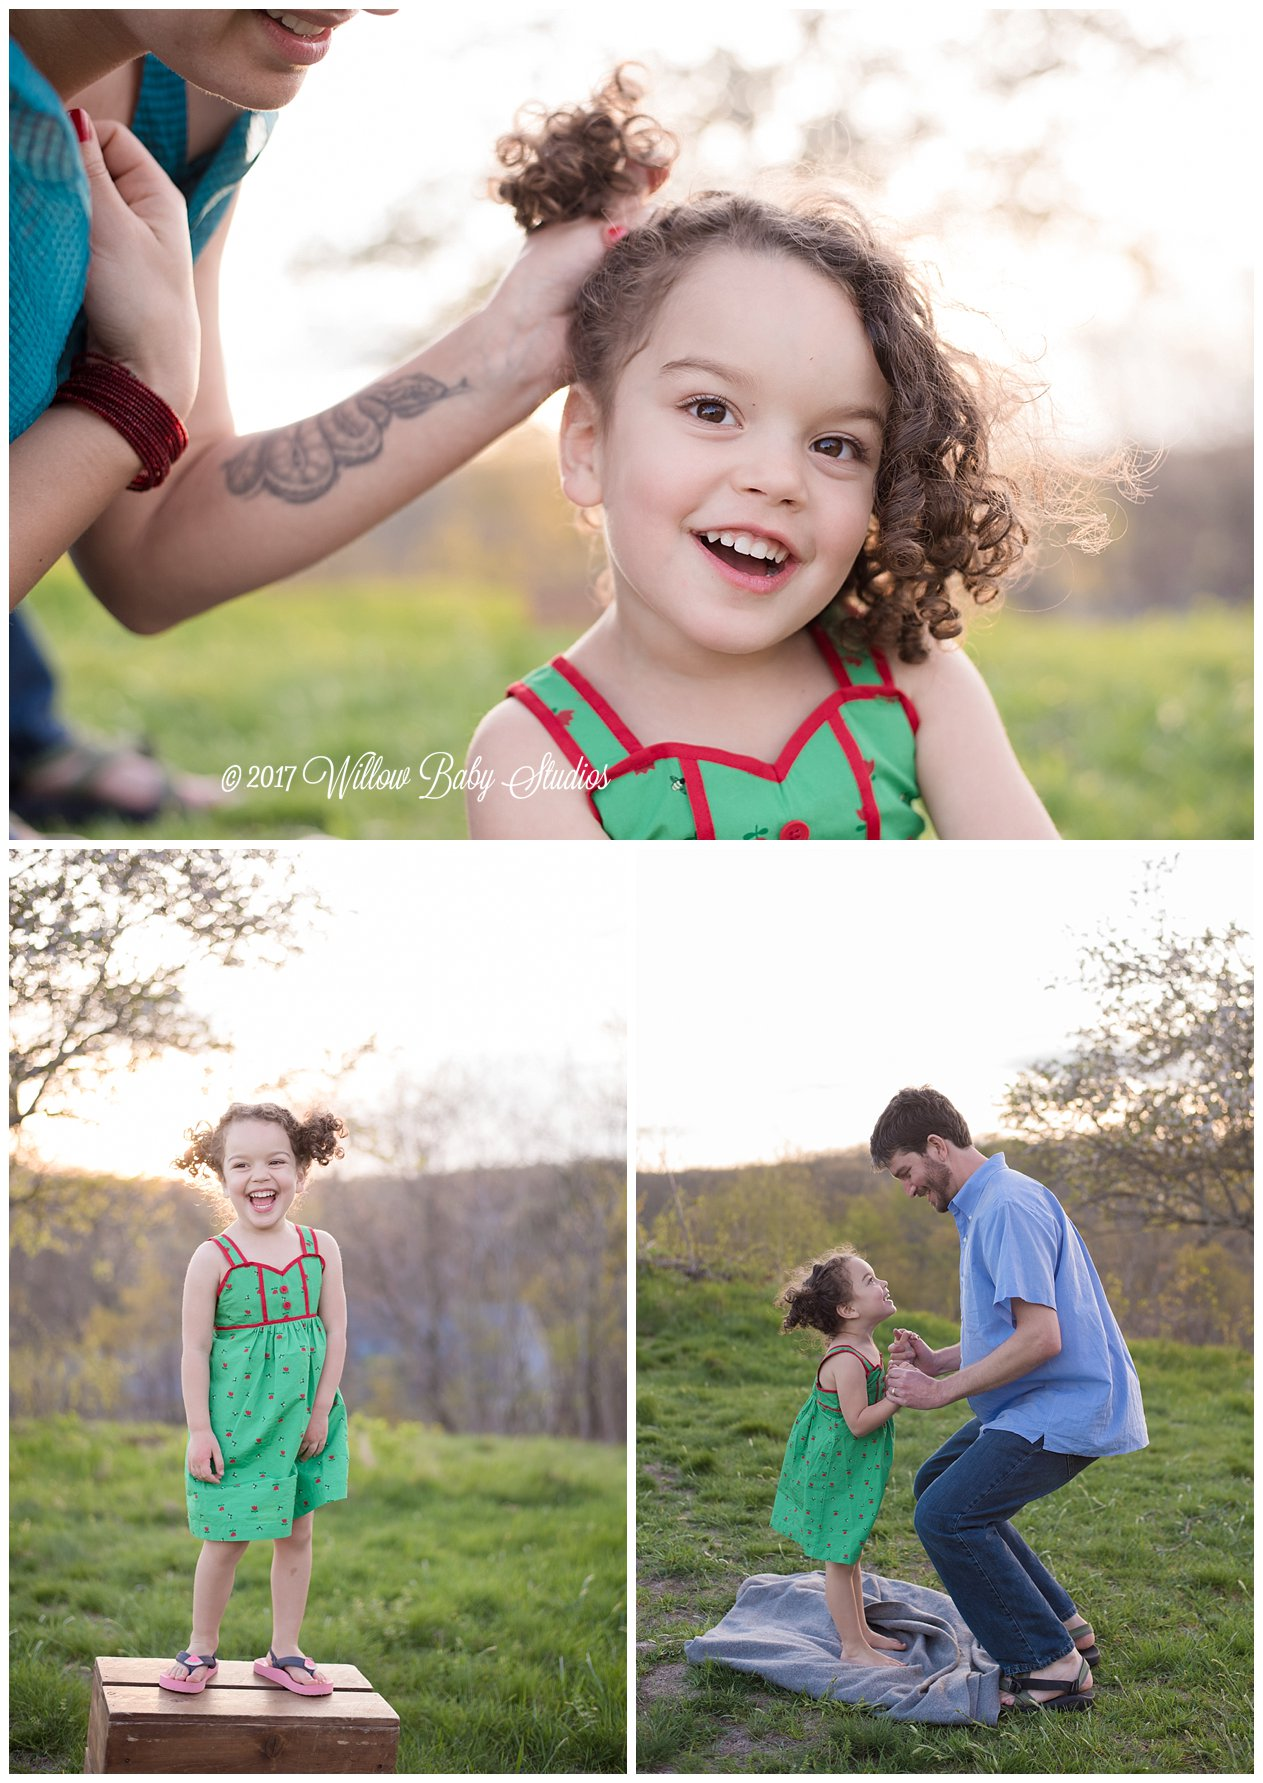 three-photos-mom-doing-daughters-hair, dad lifting daughter